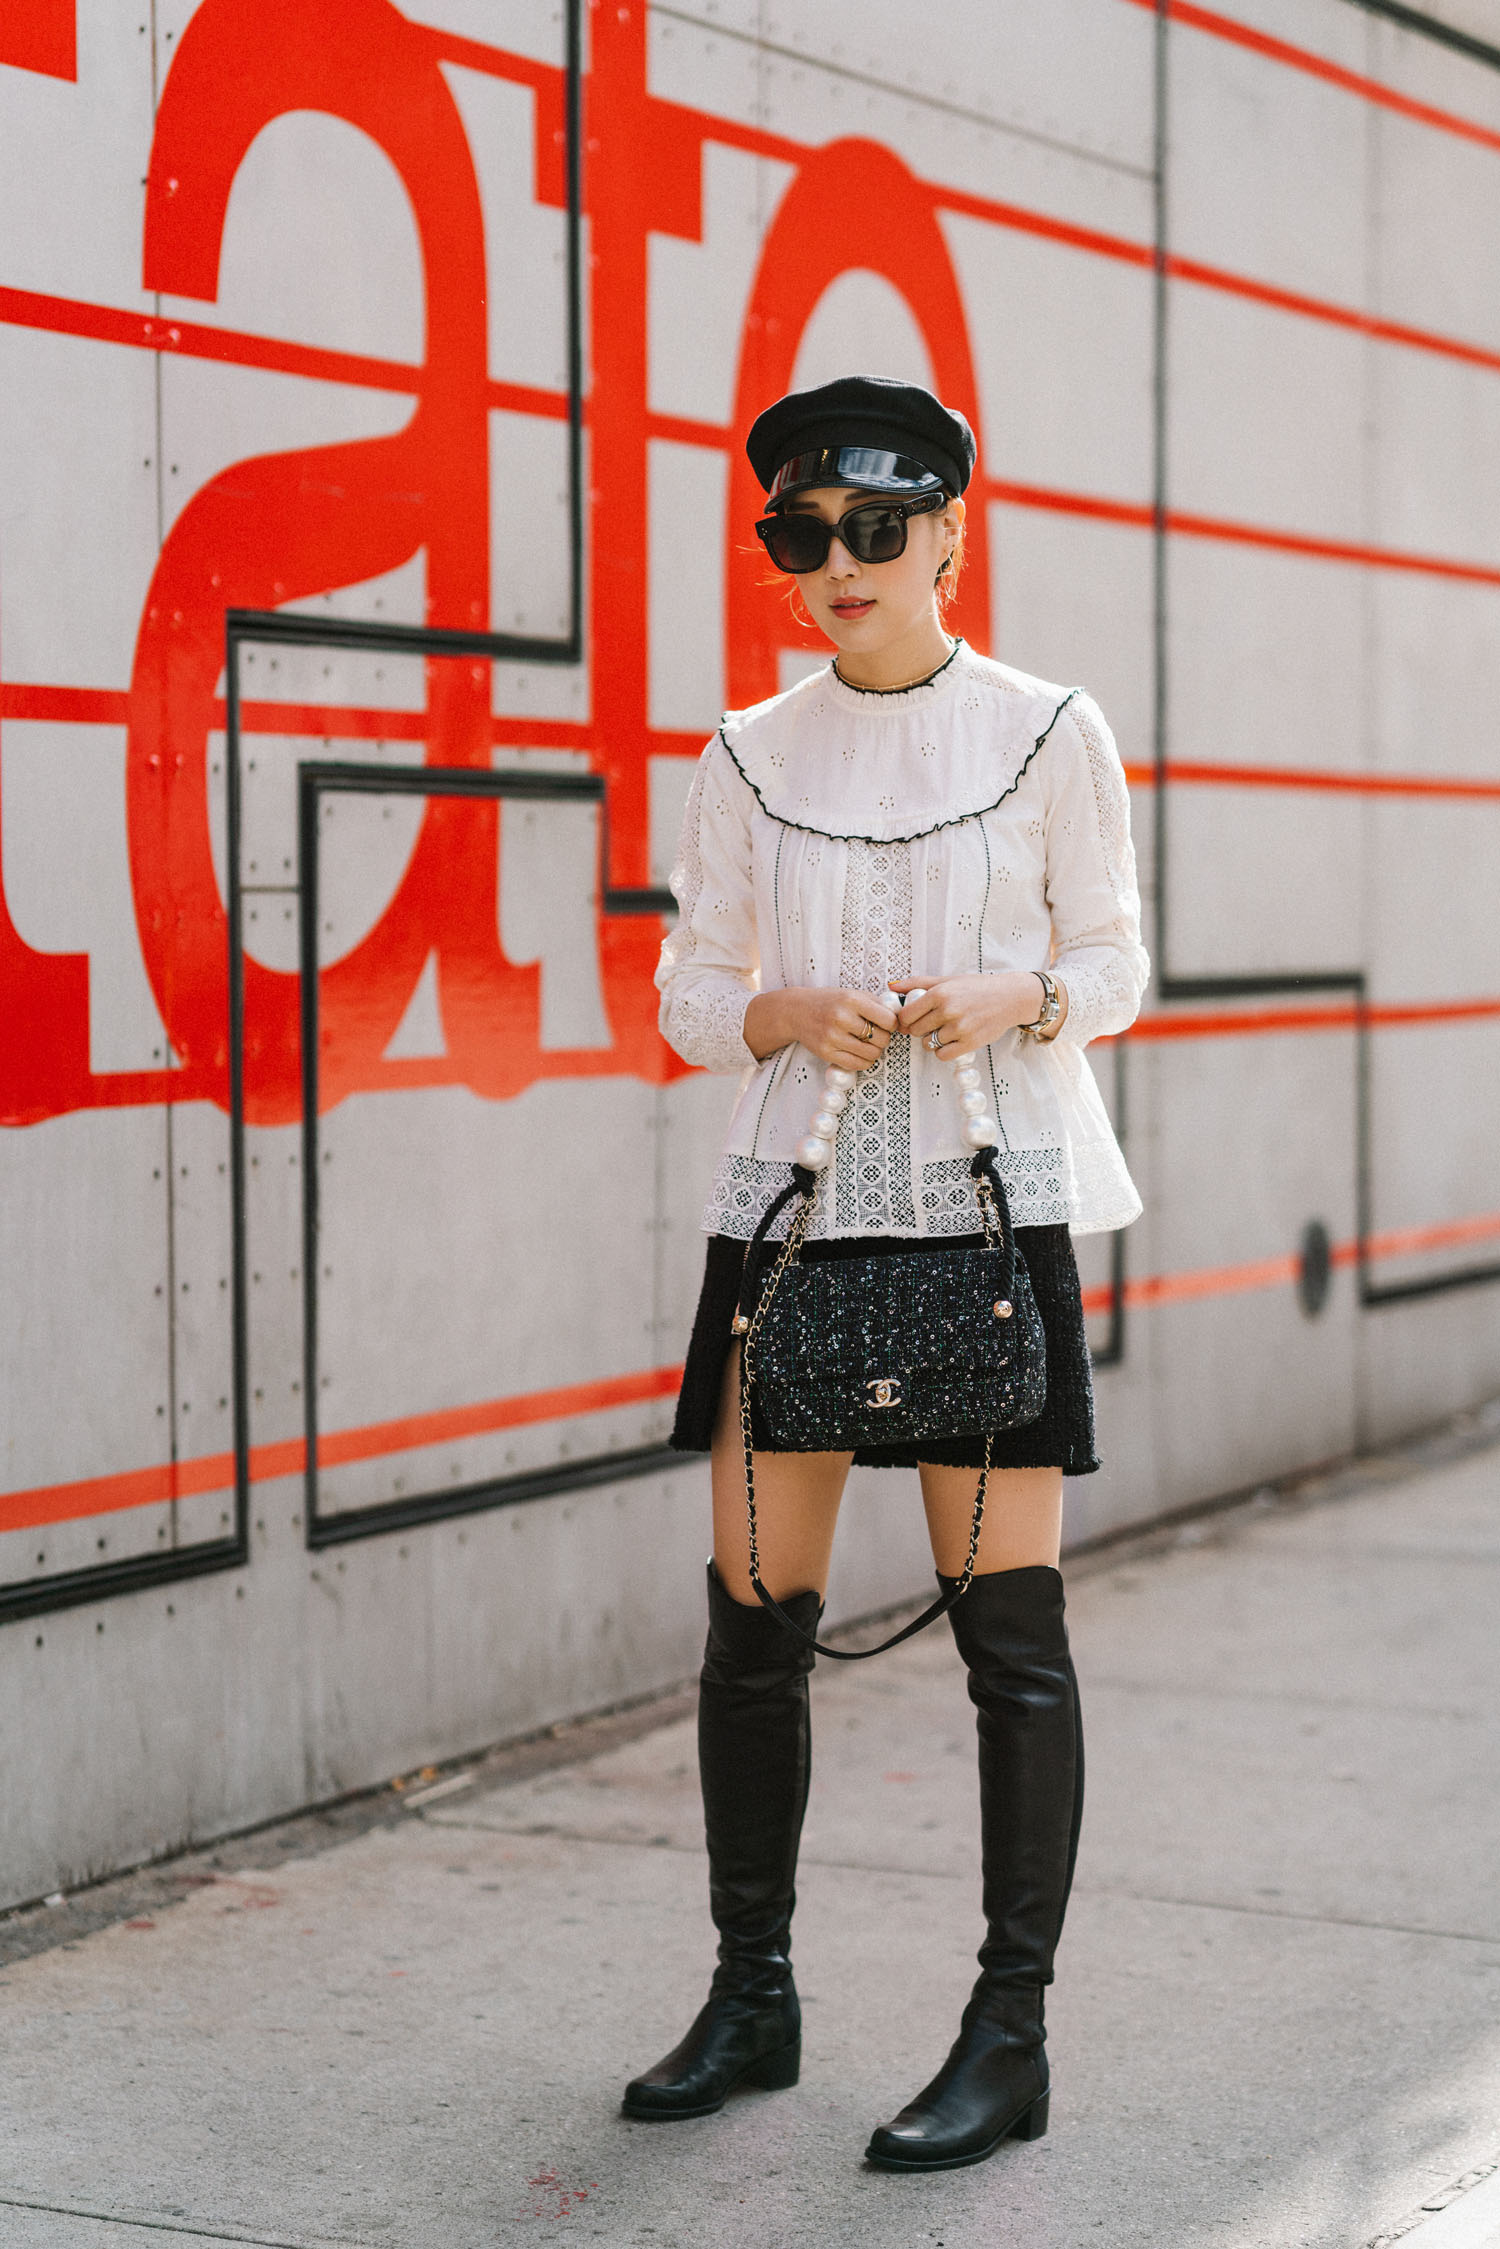 Sézane Top ,  Alexander Wang Skirt ,  Stuart Weitzman Boots , CHANEL Bag, Gucci Hat